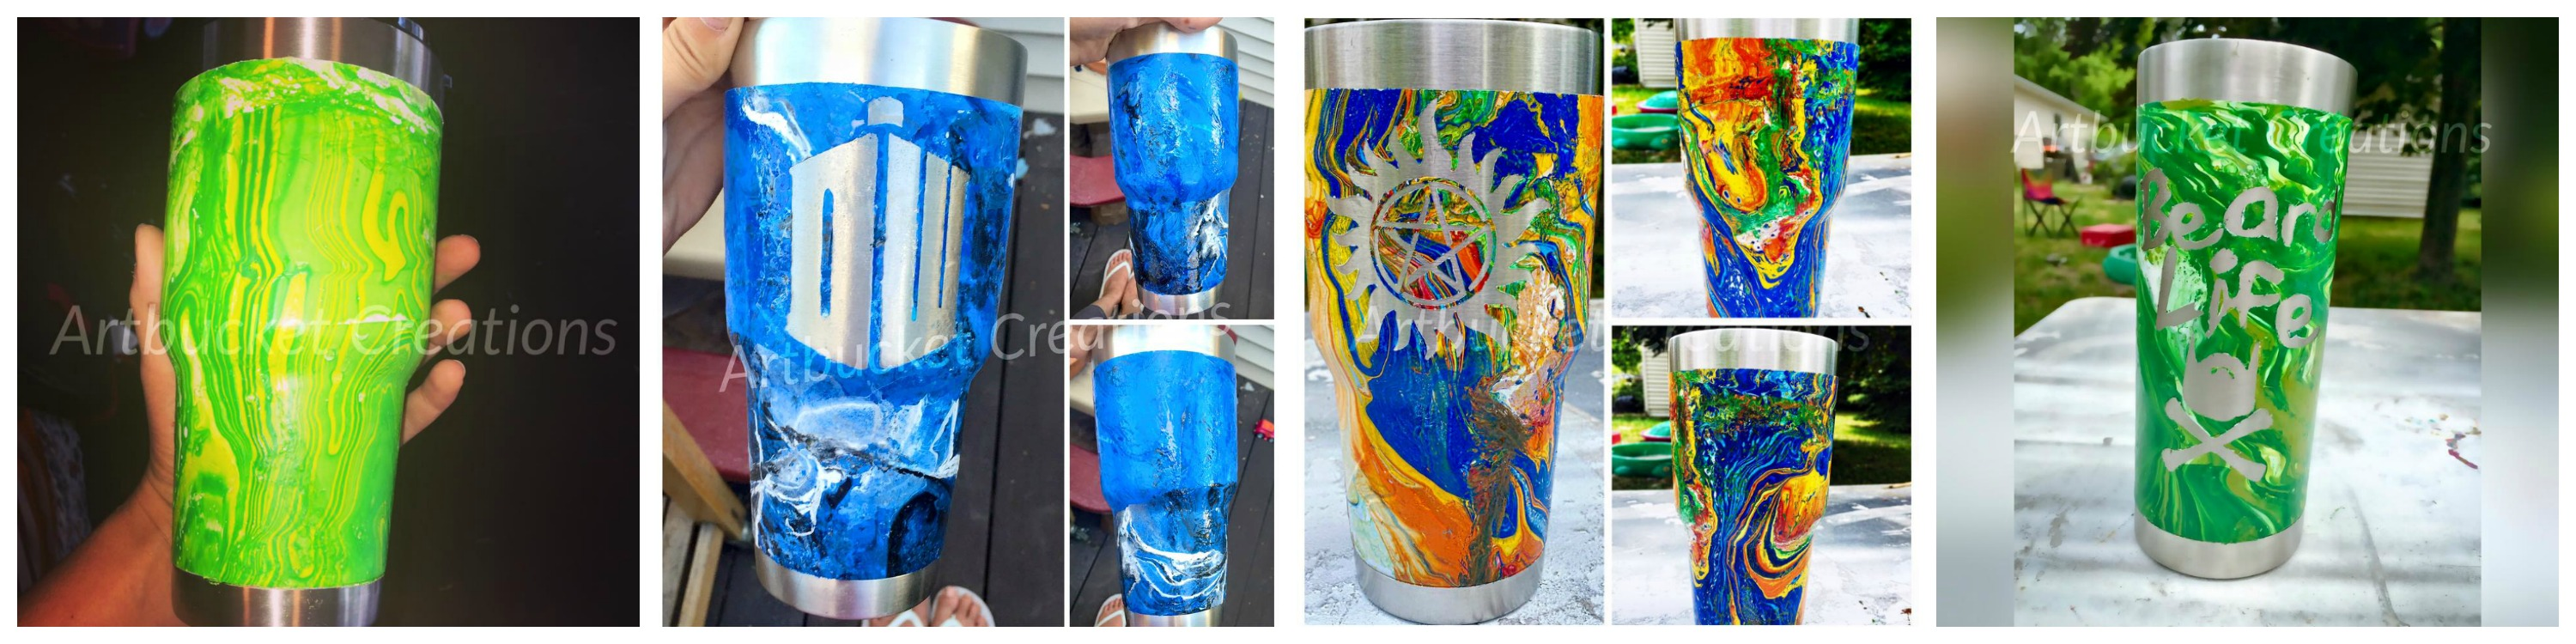 Beautiful Painted Tumblers Tutorial – Crafting While Adulting